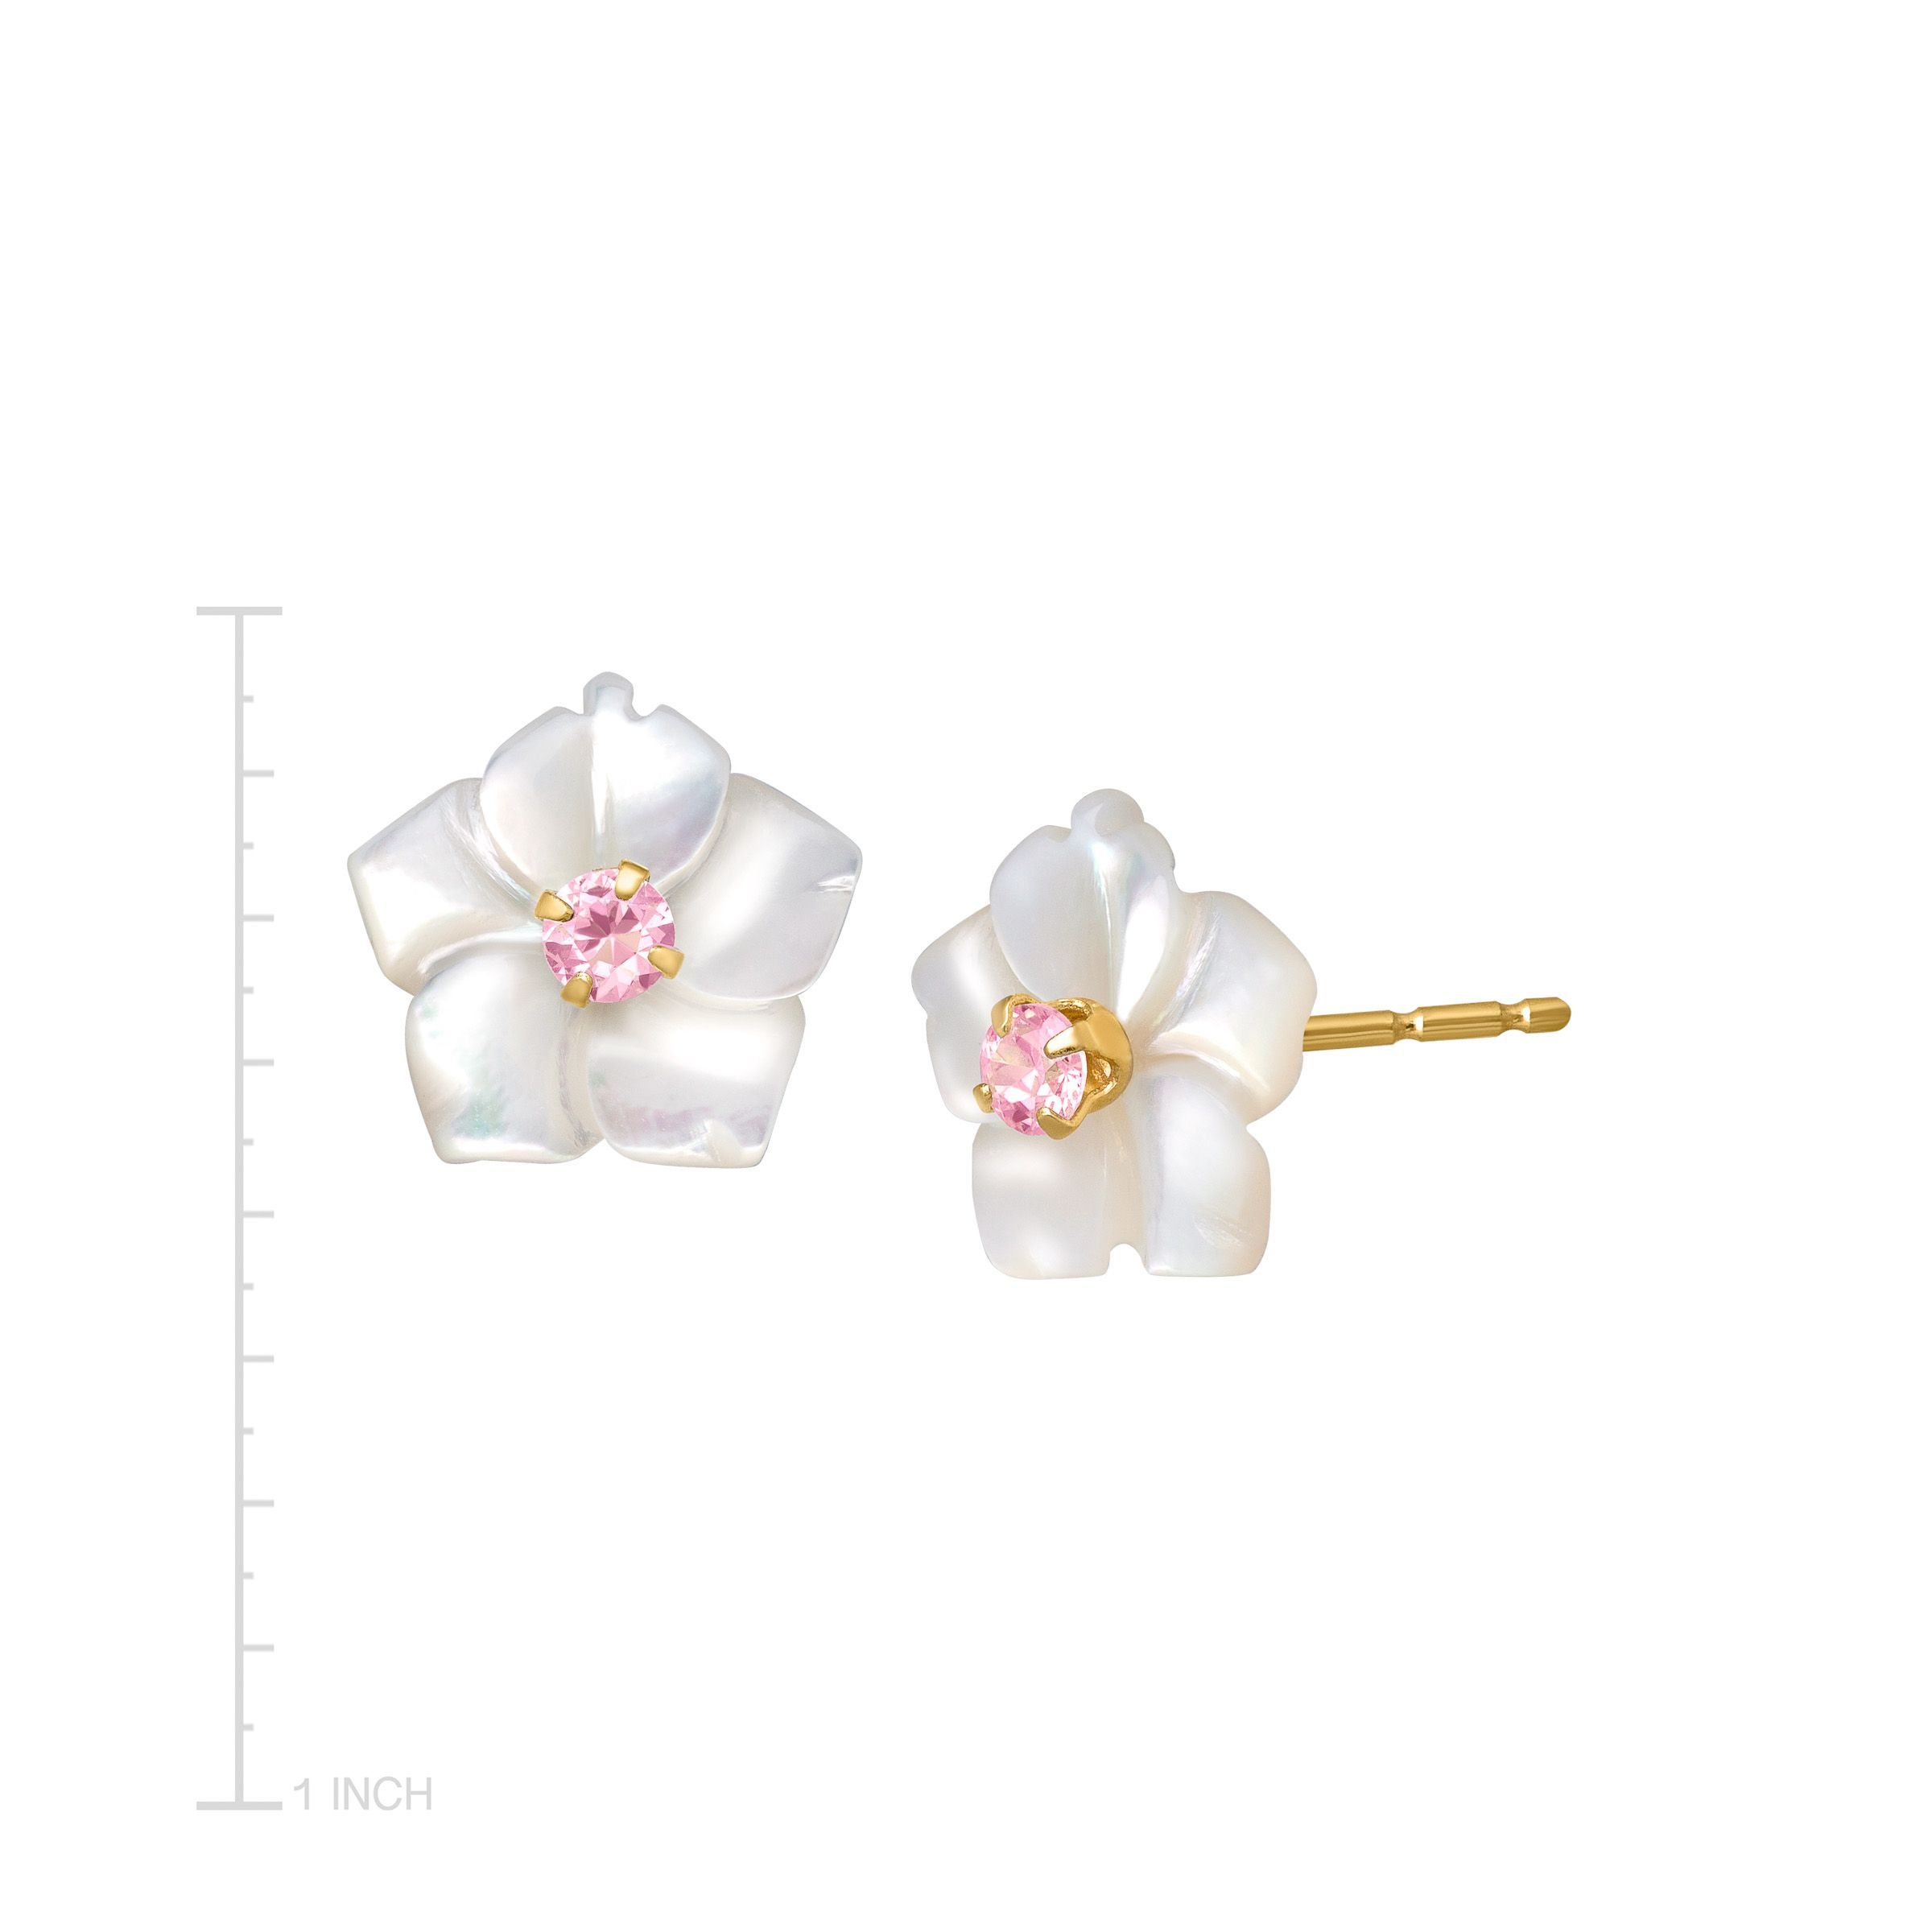 Details About Mother Of Pearl Flower Earrings With Pink Cubic Zirconia In 14k Gold